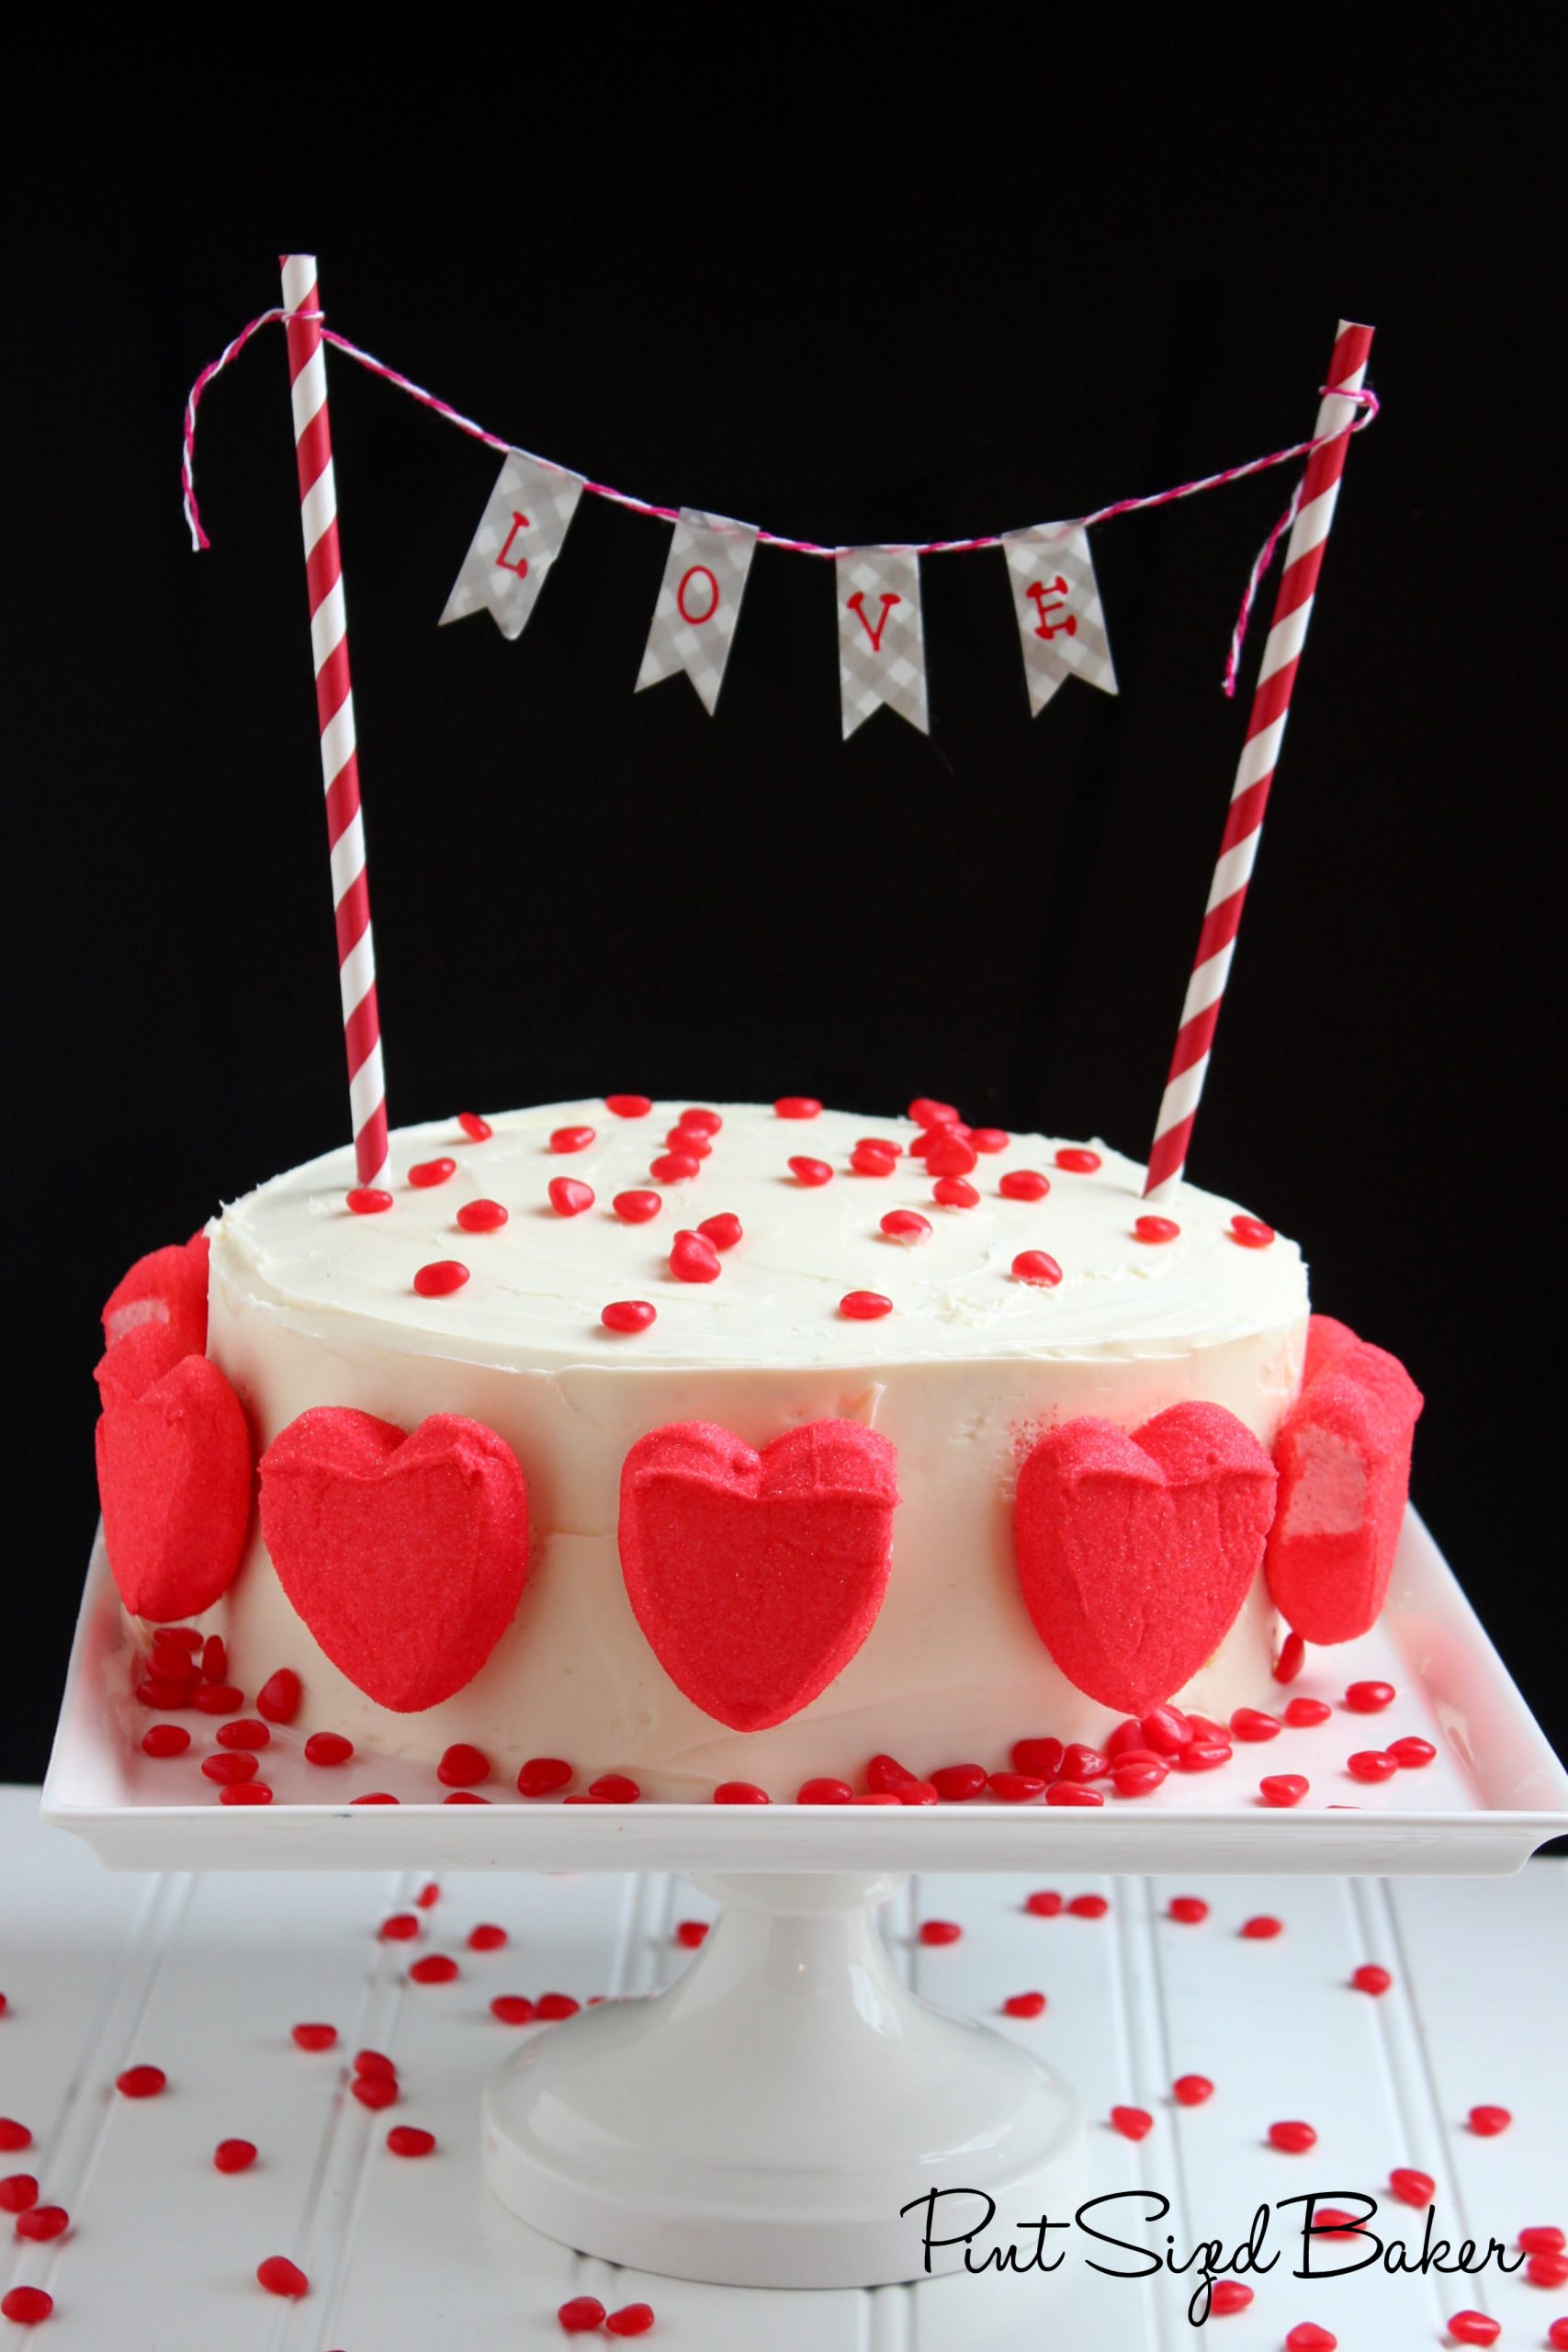 This simple yet stunning Valentine's Cake is perfect for any day of the year that you want to tell someone